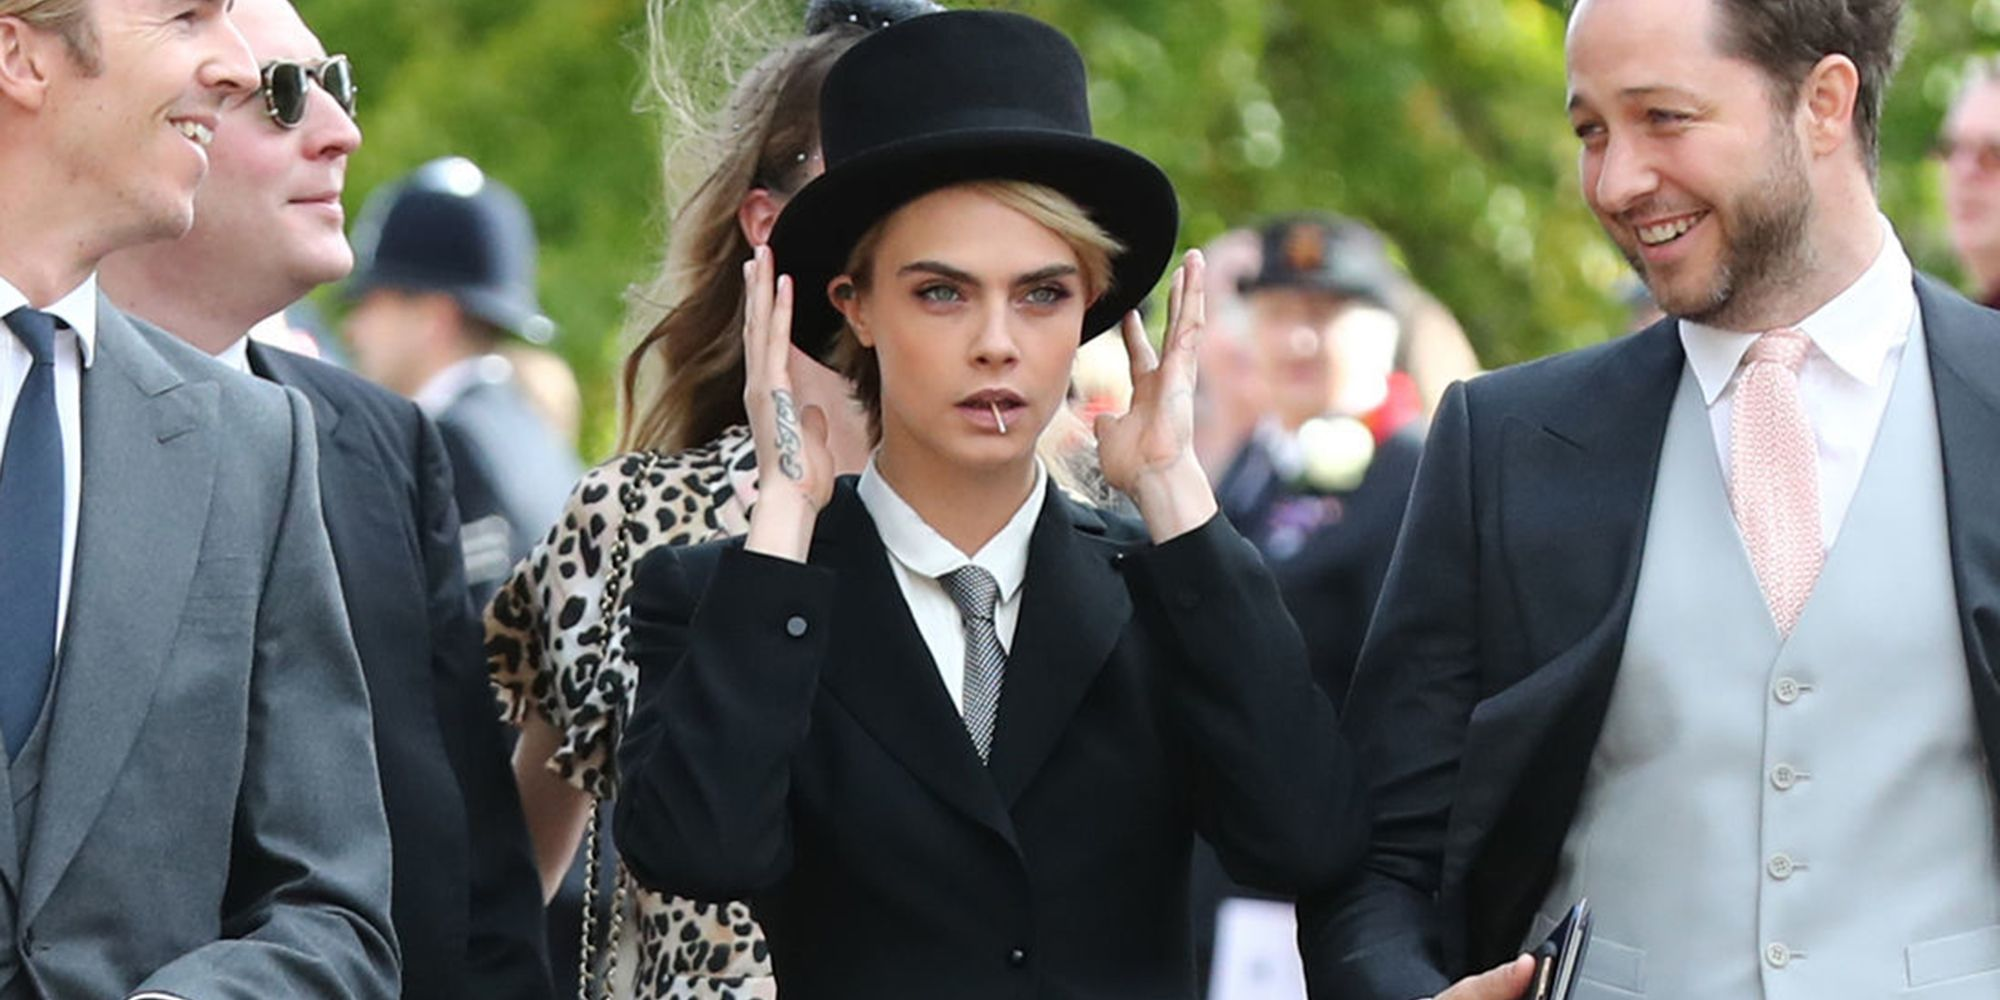 Cara Delevingne Wore a Top Hat and Tails to the Royal Wedding